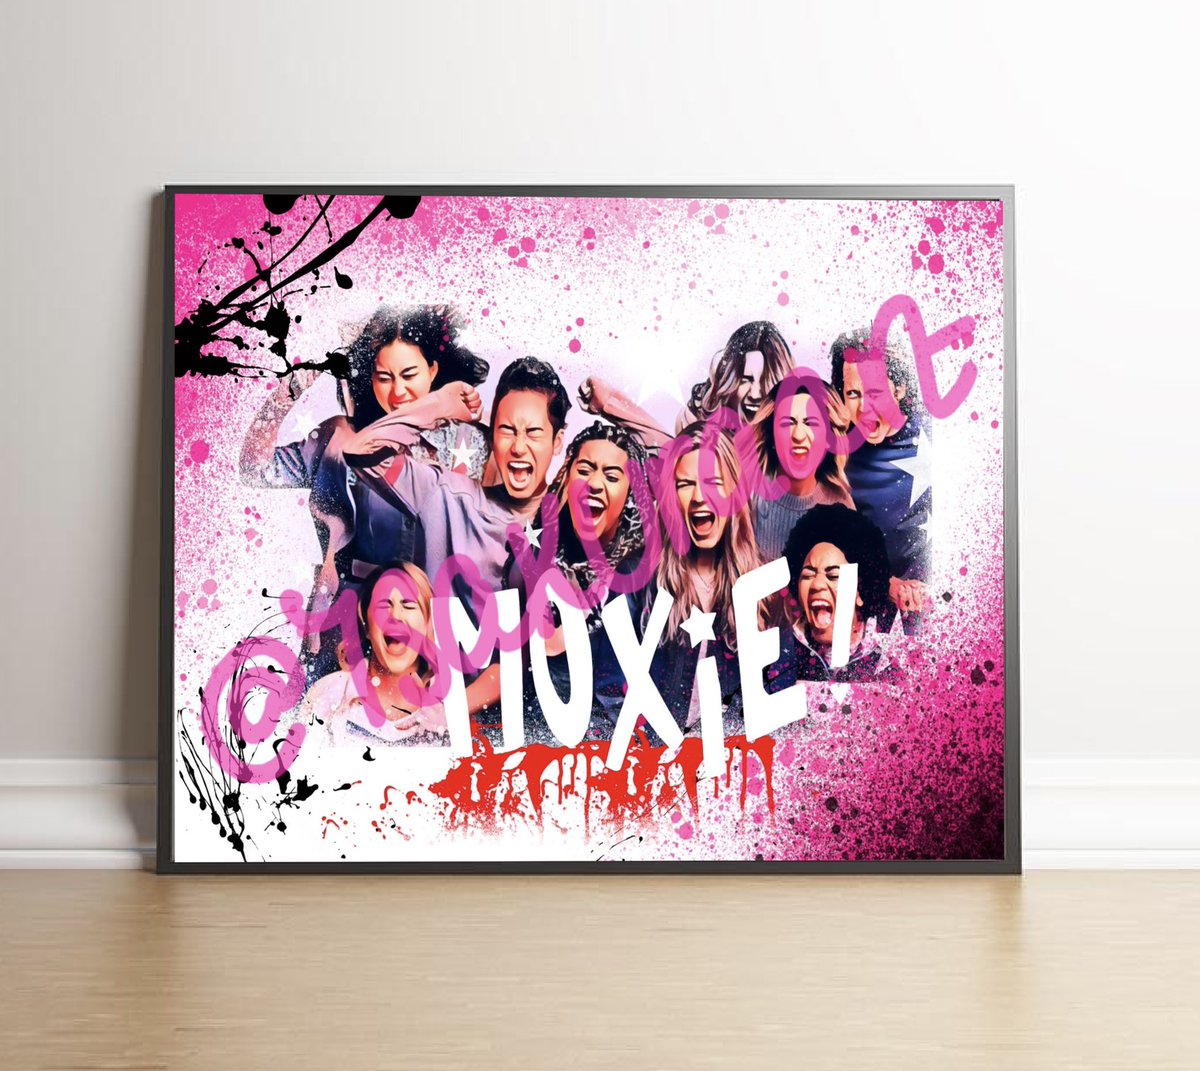 I'm obsessed with #Moxie so I had to create some prints! Let me know what you think and please like/retweet it would mean a lot🤍  Available here:   #moxie #moxiegirlsfightback #josephinelangford @smrtgrls @netflix #netflix #etsy #ShopSmall #rebelgirl